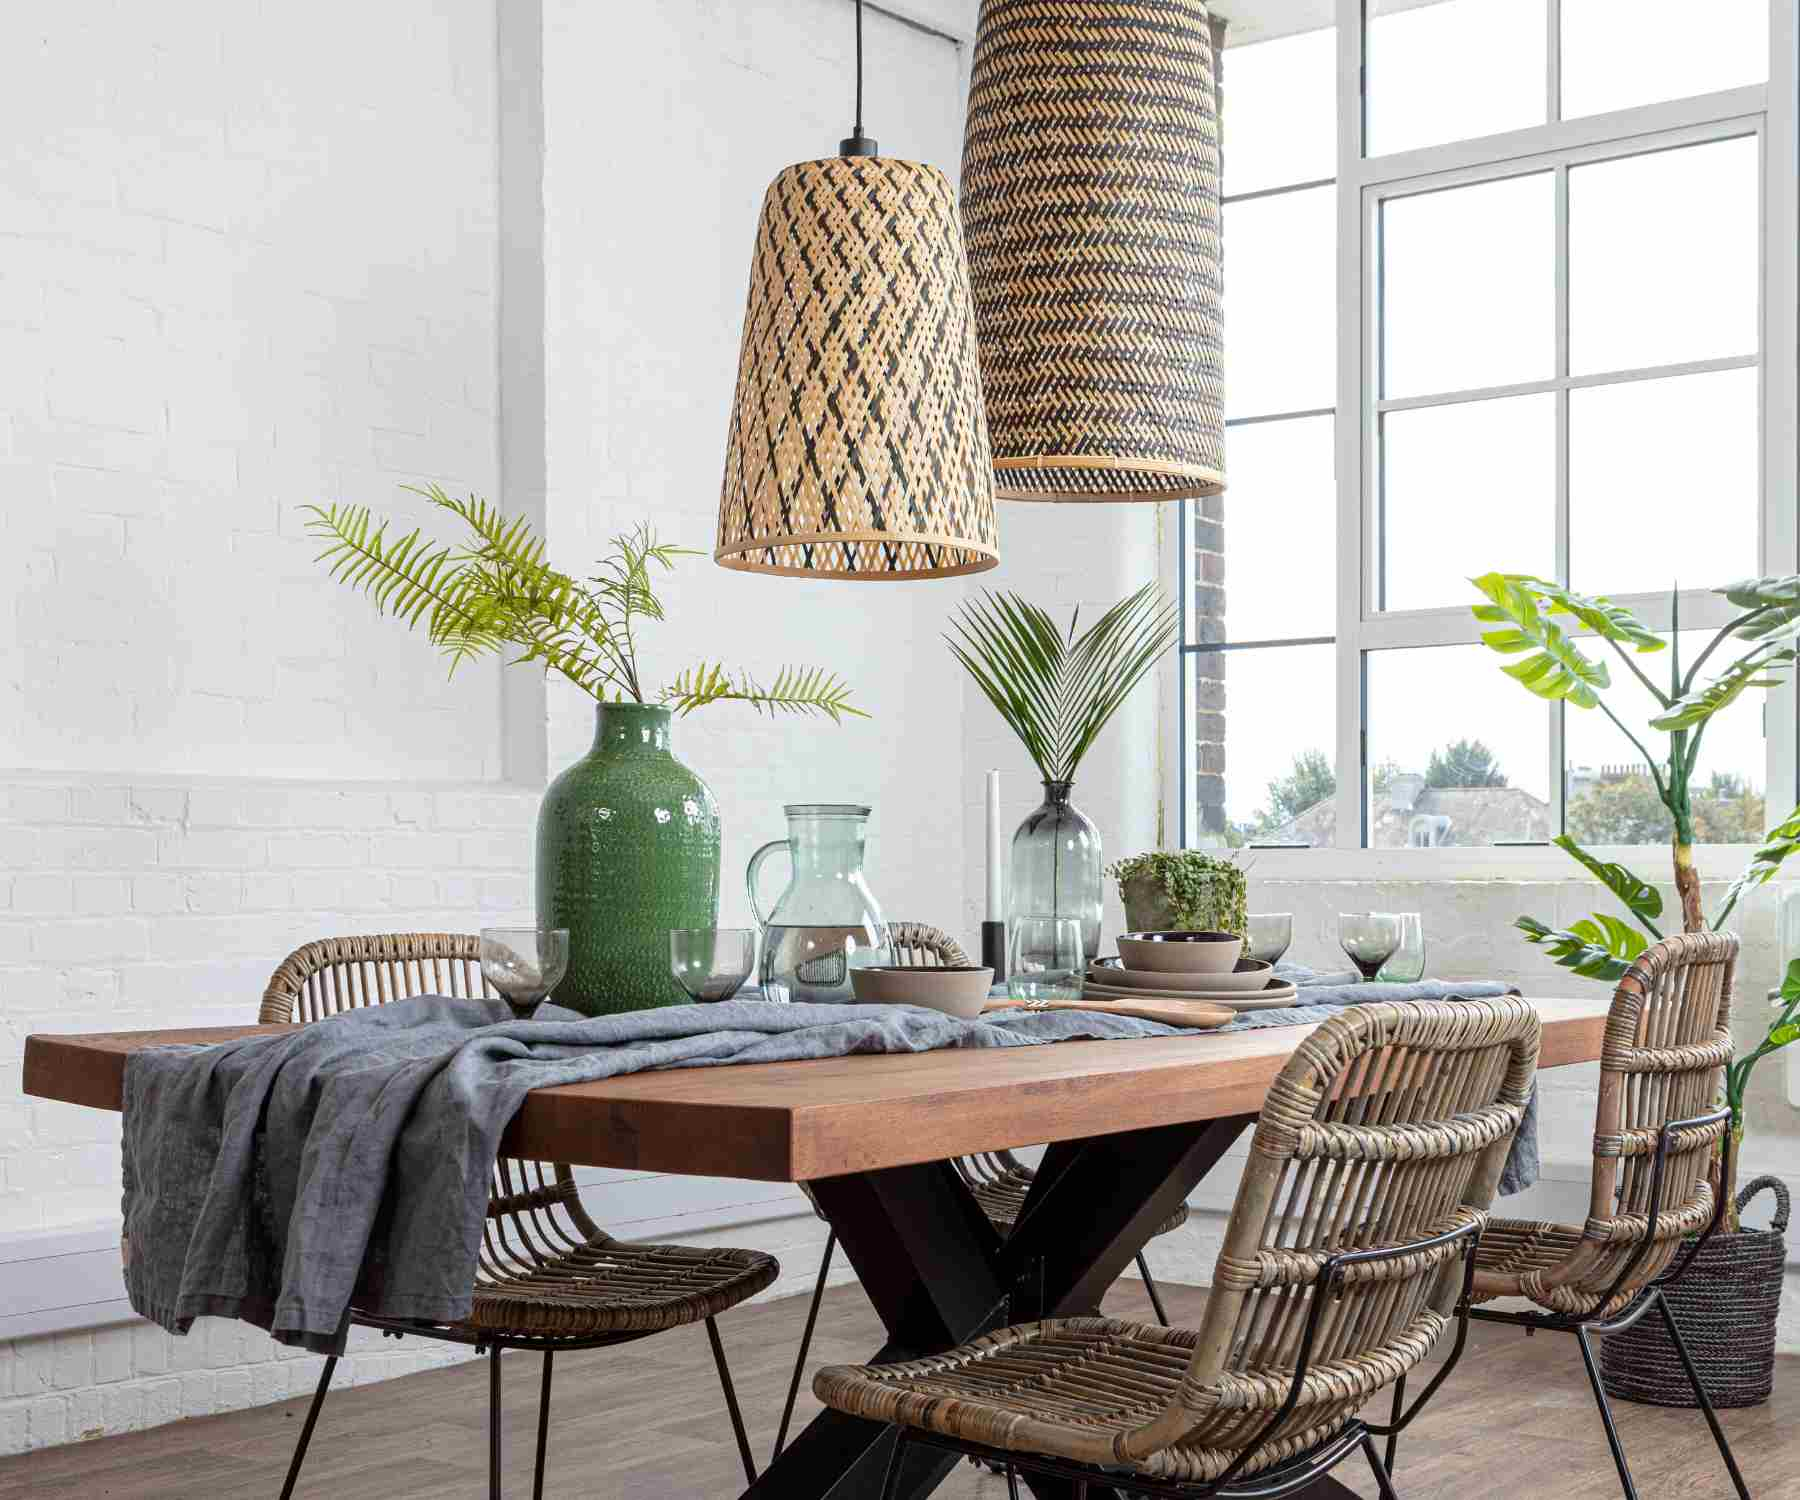 Two bamboo hanging pendant lights above an industrial dining table